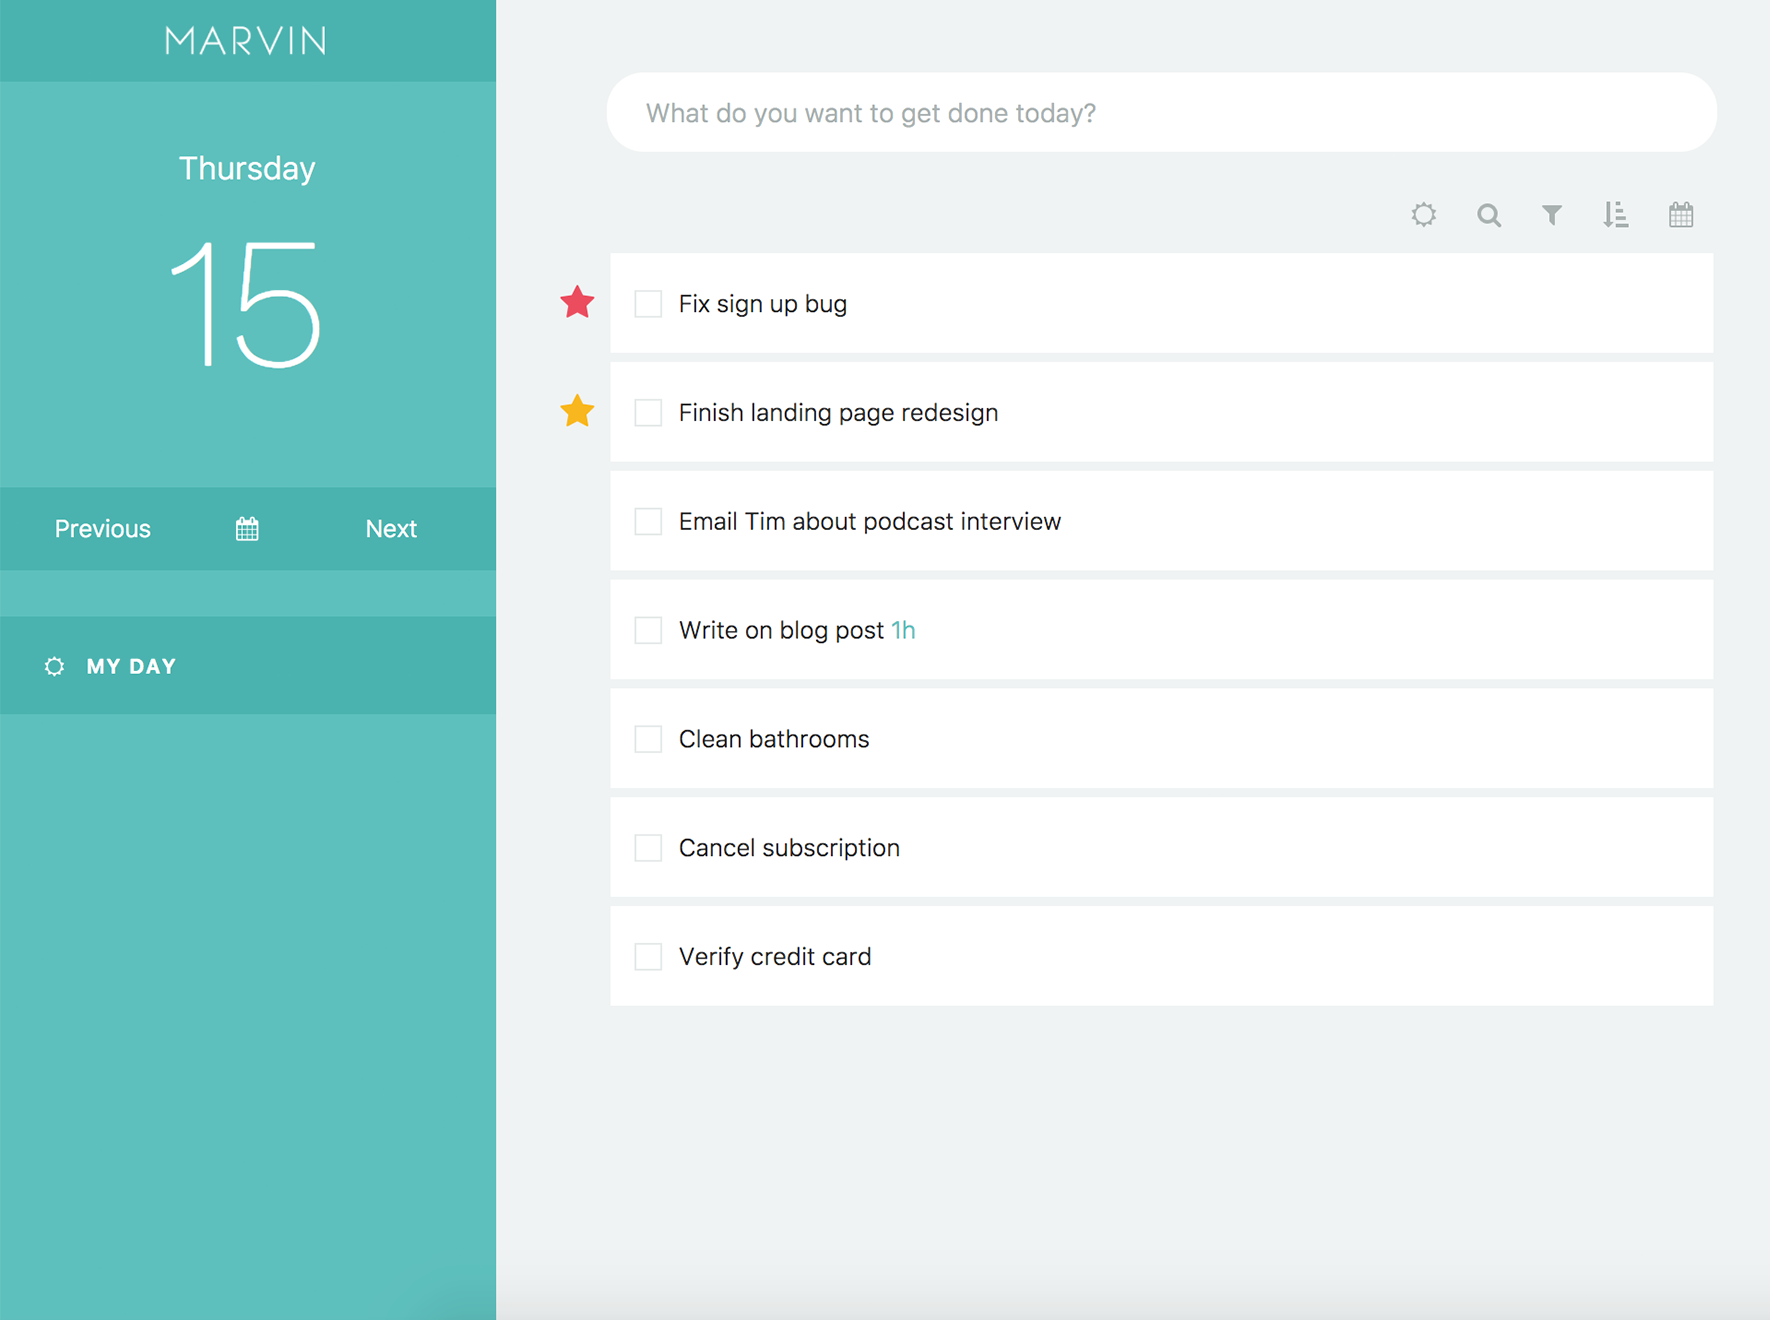 Day Planner Amazing Marvin todo app